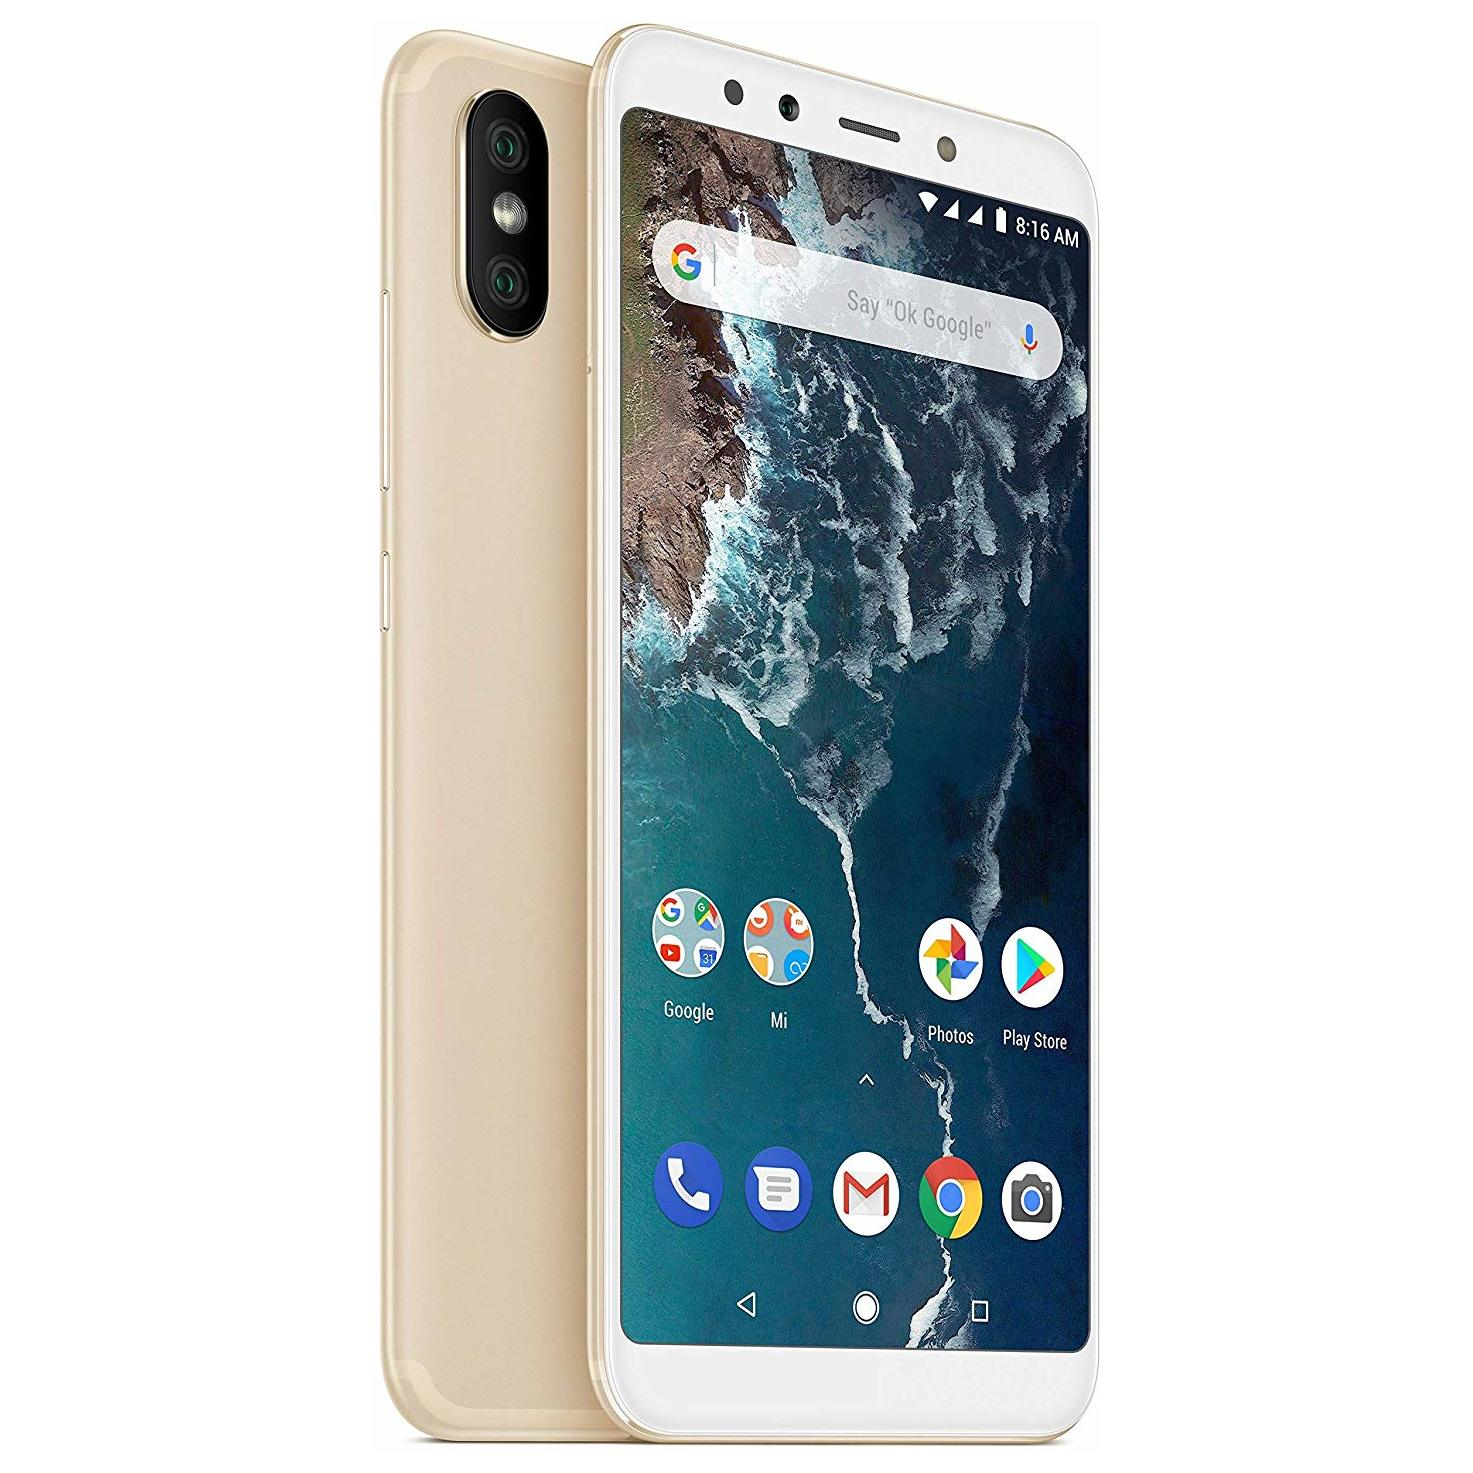 Nokia 7 Plus 64gb White Copper 4g Lte Dual Sim Smartphone Ta 1046 Fujifilm X A2 Kit 16 50 Mm 16mp Wifi Brownsilverblack Xiaomi Mi Gold